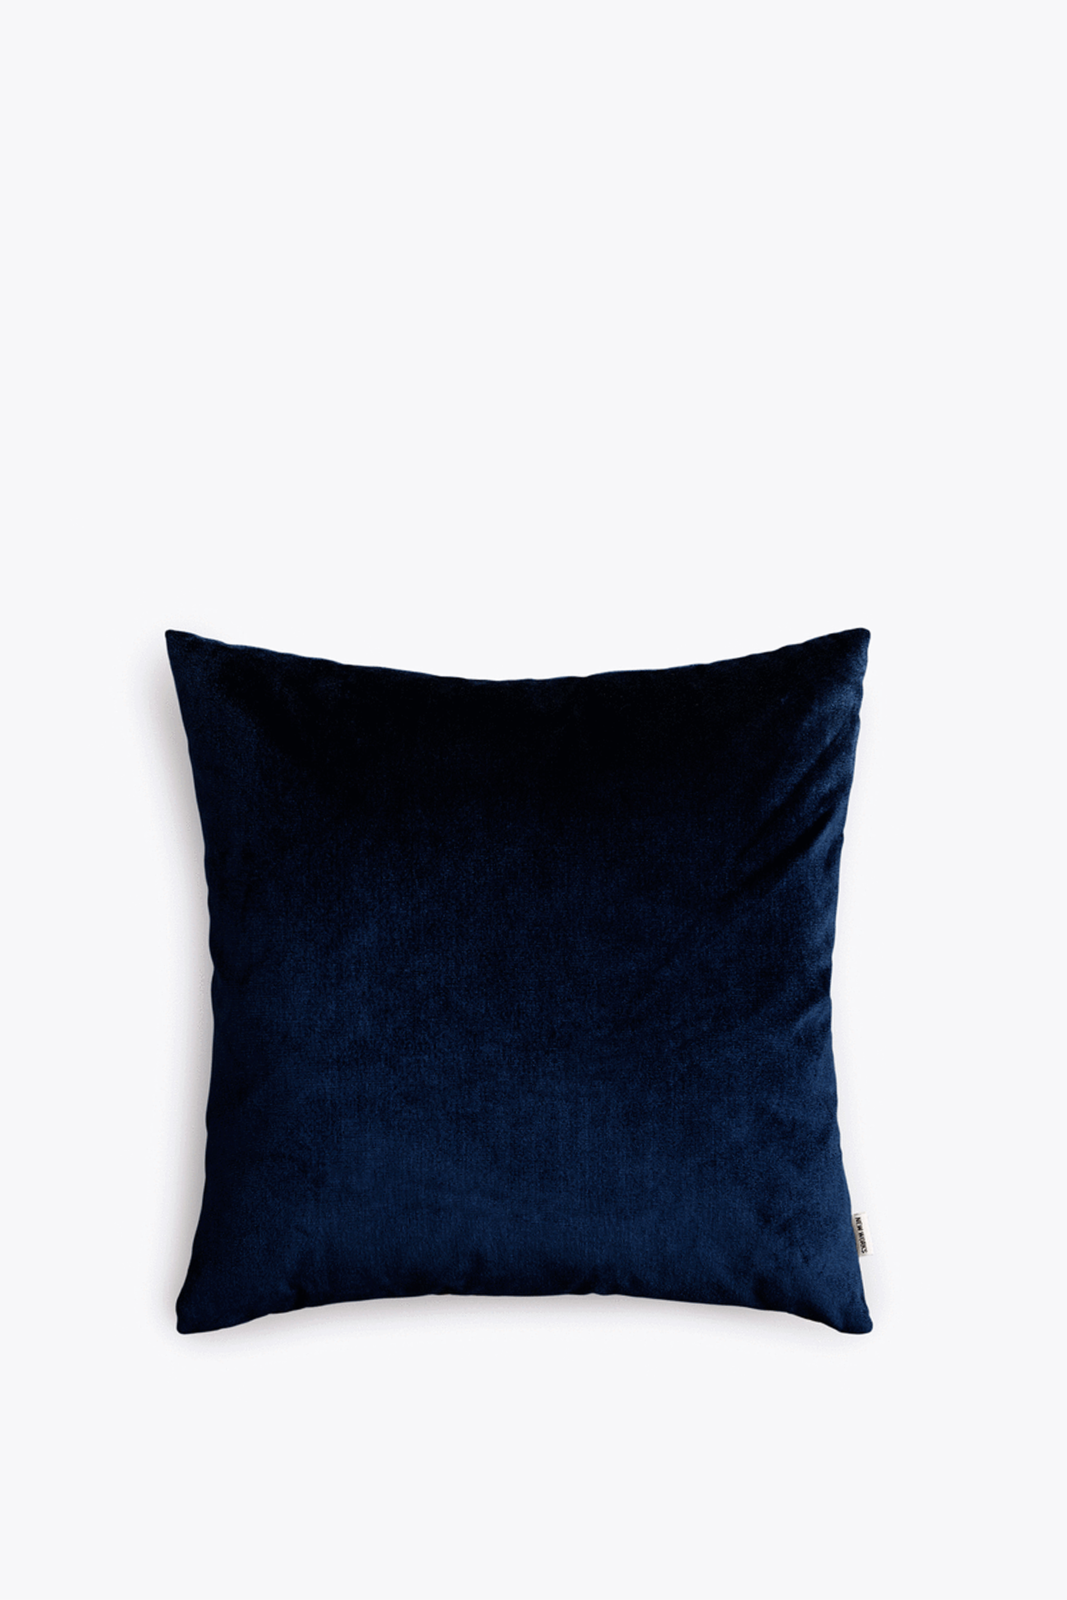 Velvet Cushion Marine Blue